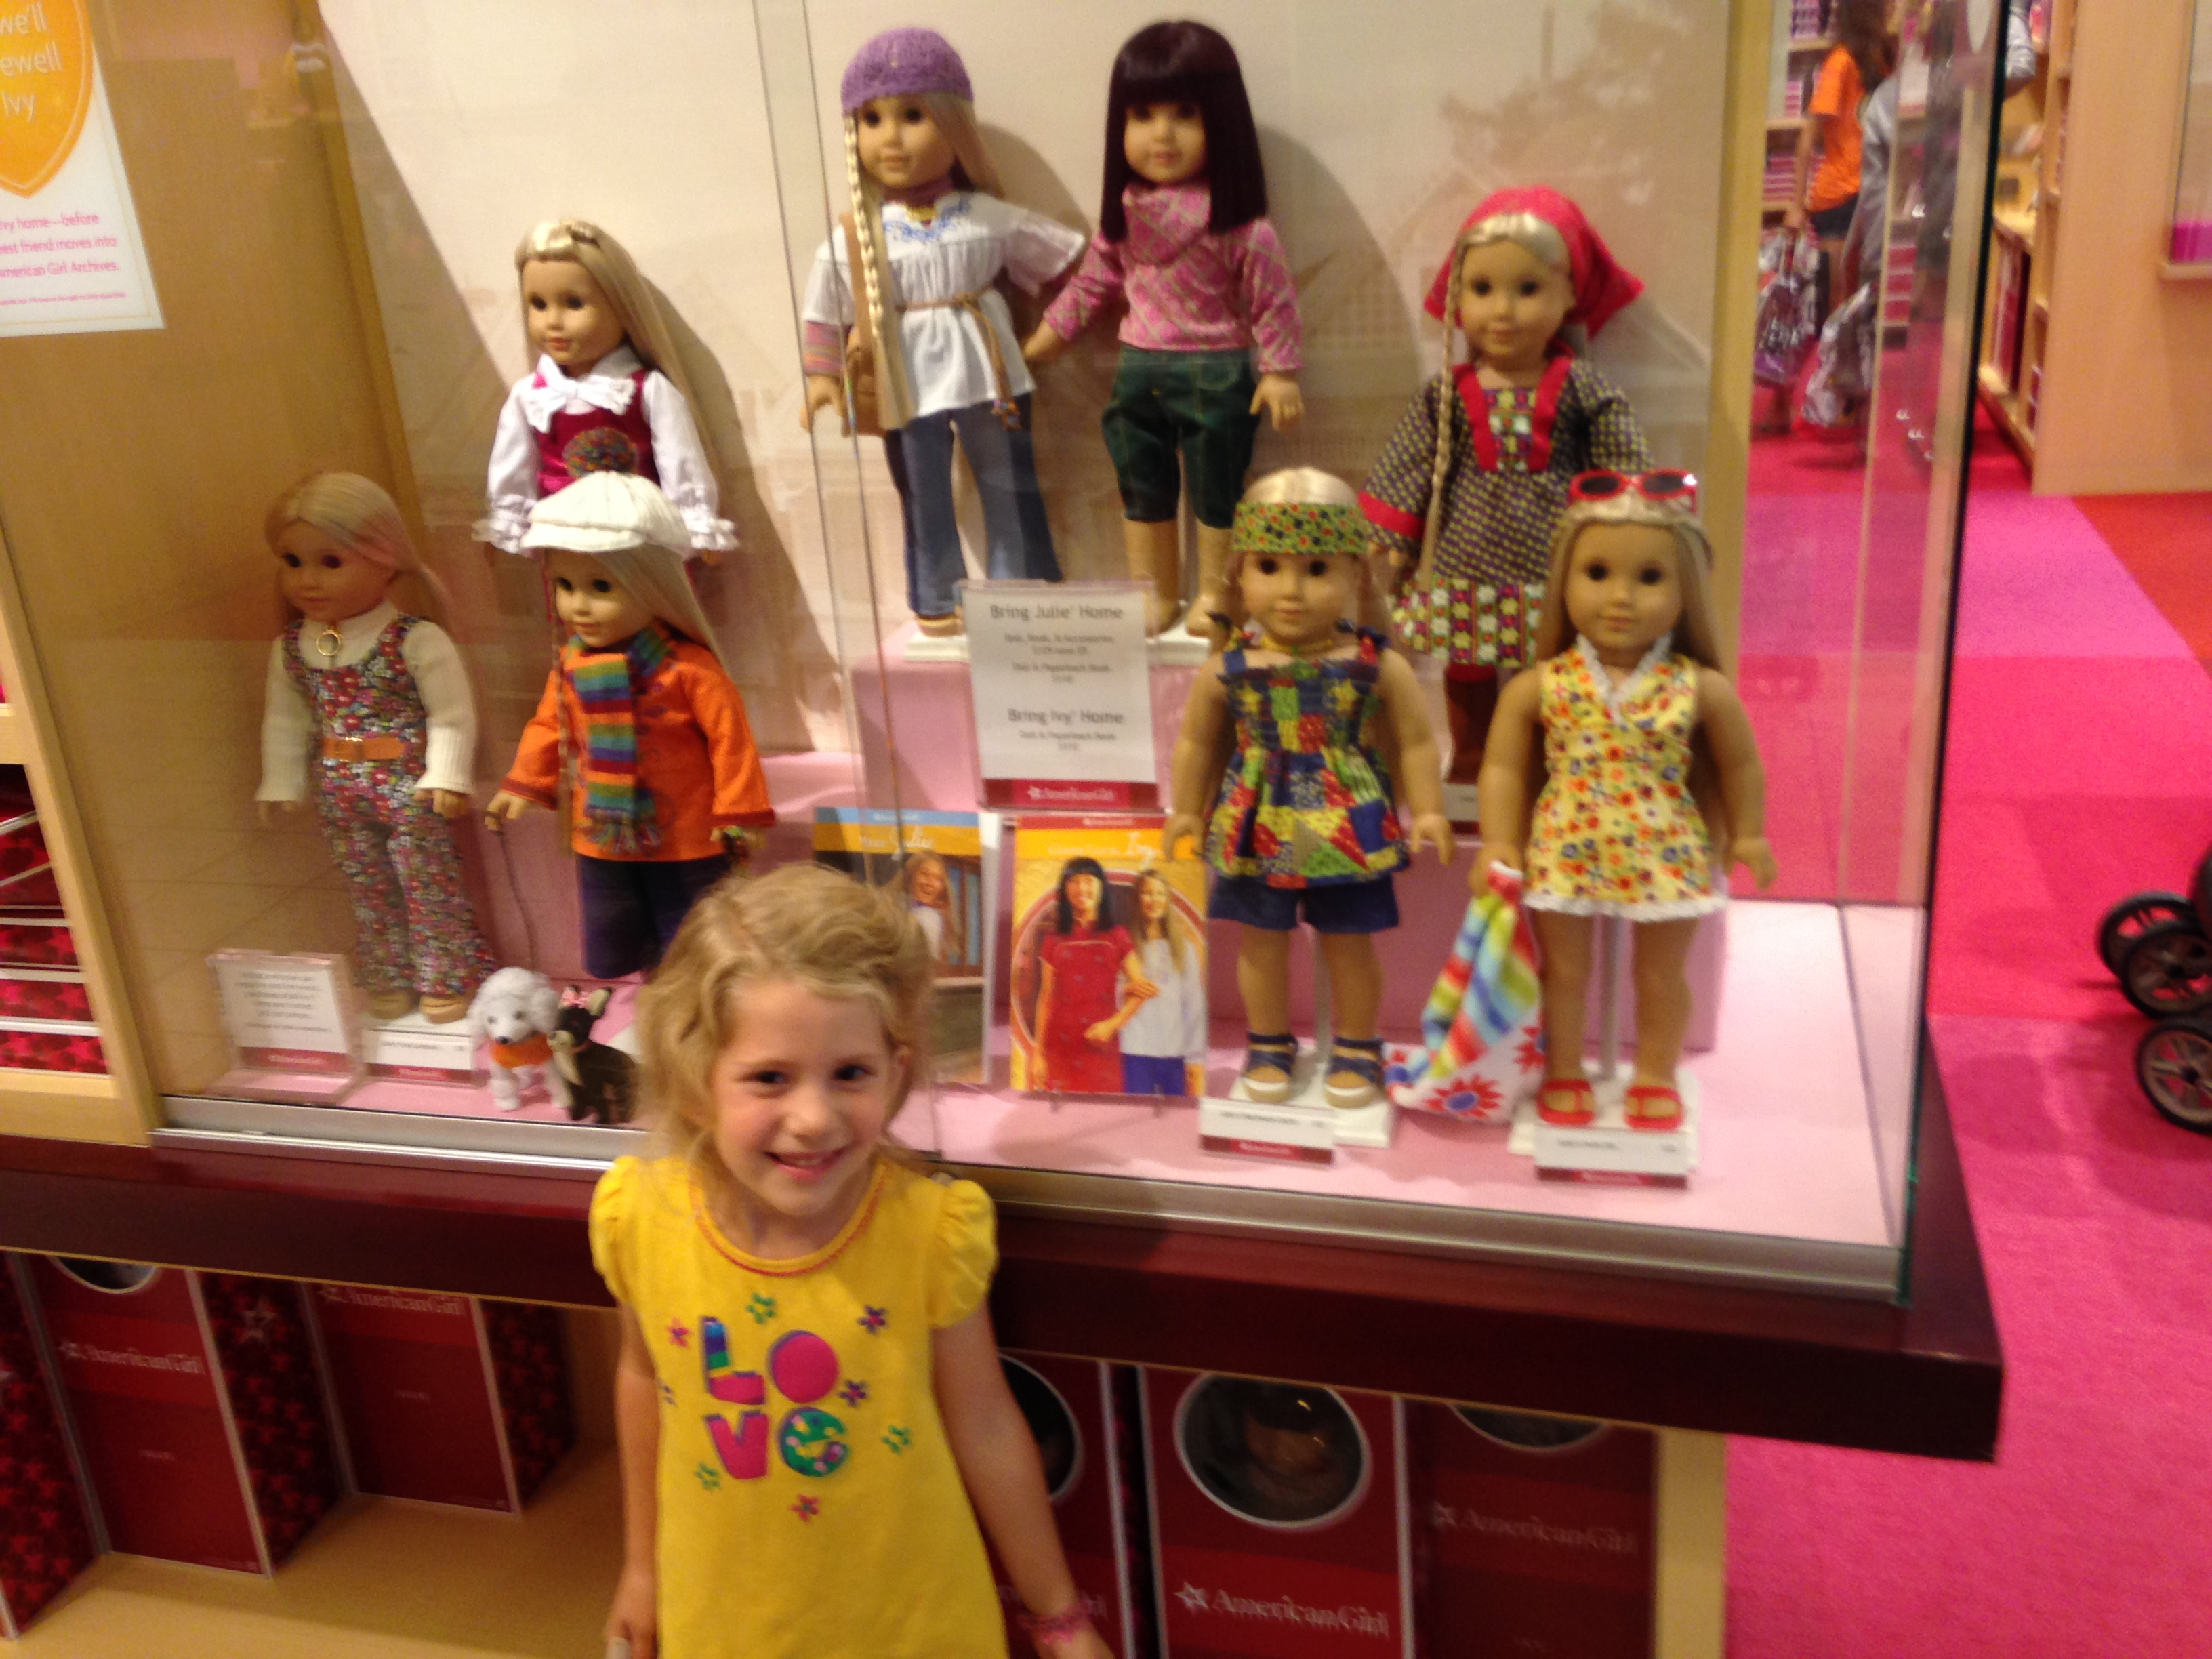 Kaylin with all the Julie dolls